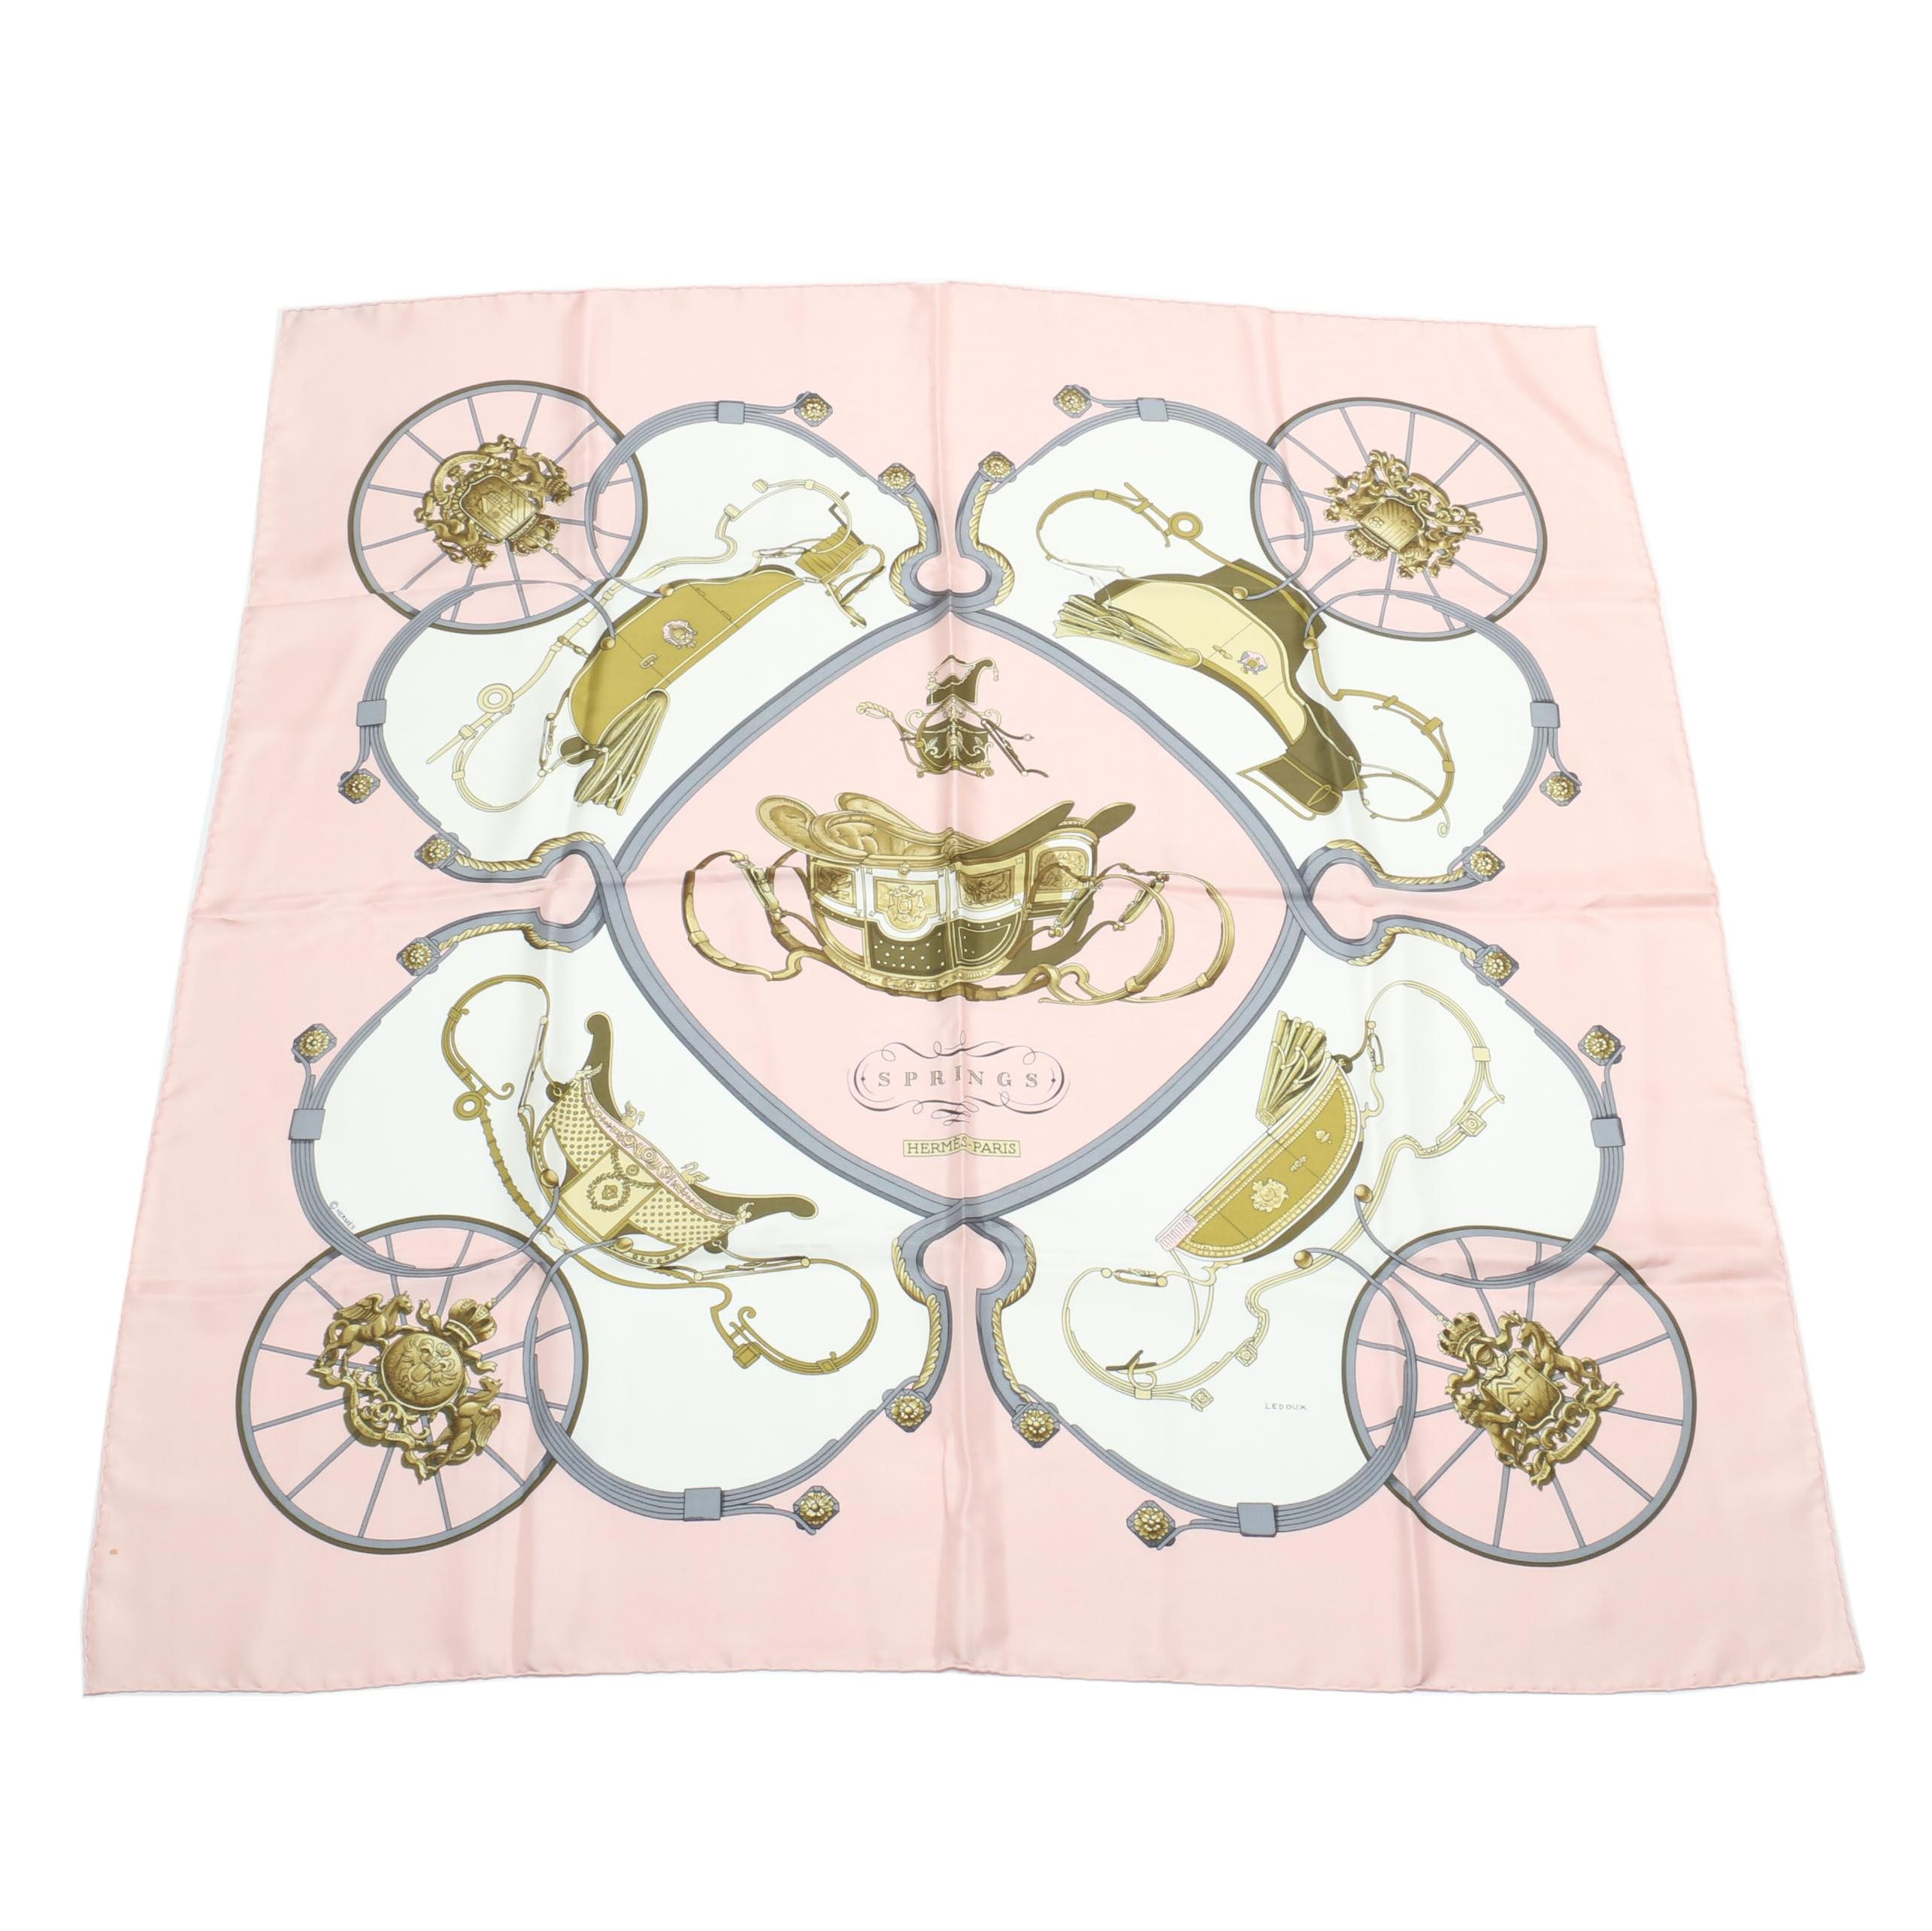 """Hermès of Paris """"Springs"""" Silk Scarf Designed by Philippe Ledoux, Made in France"""